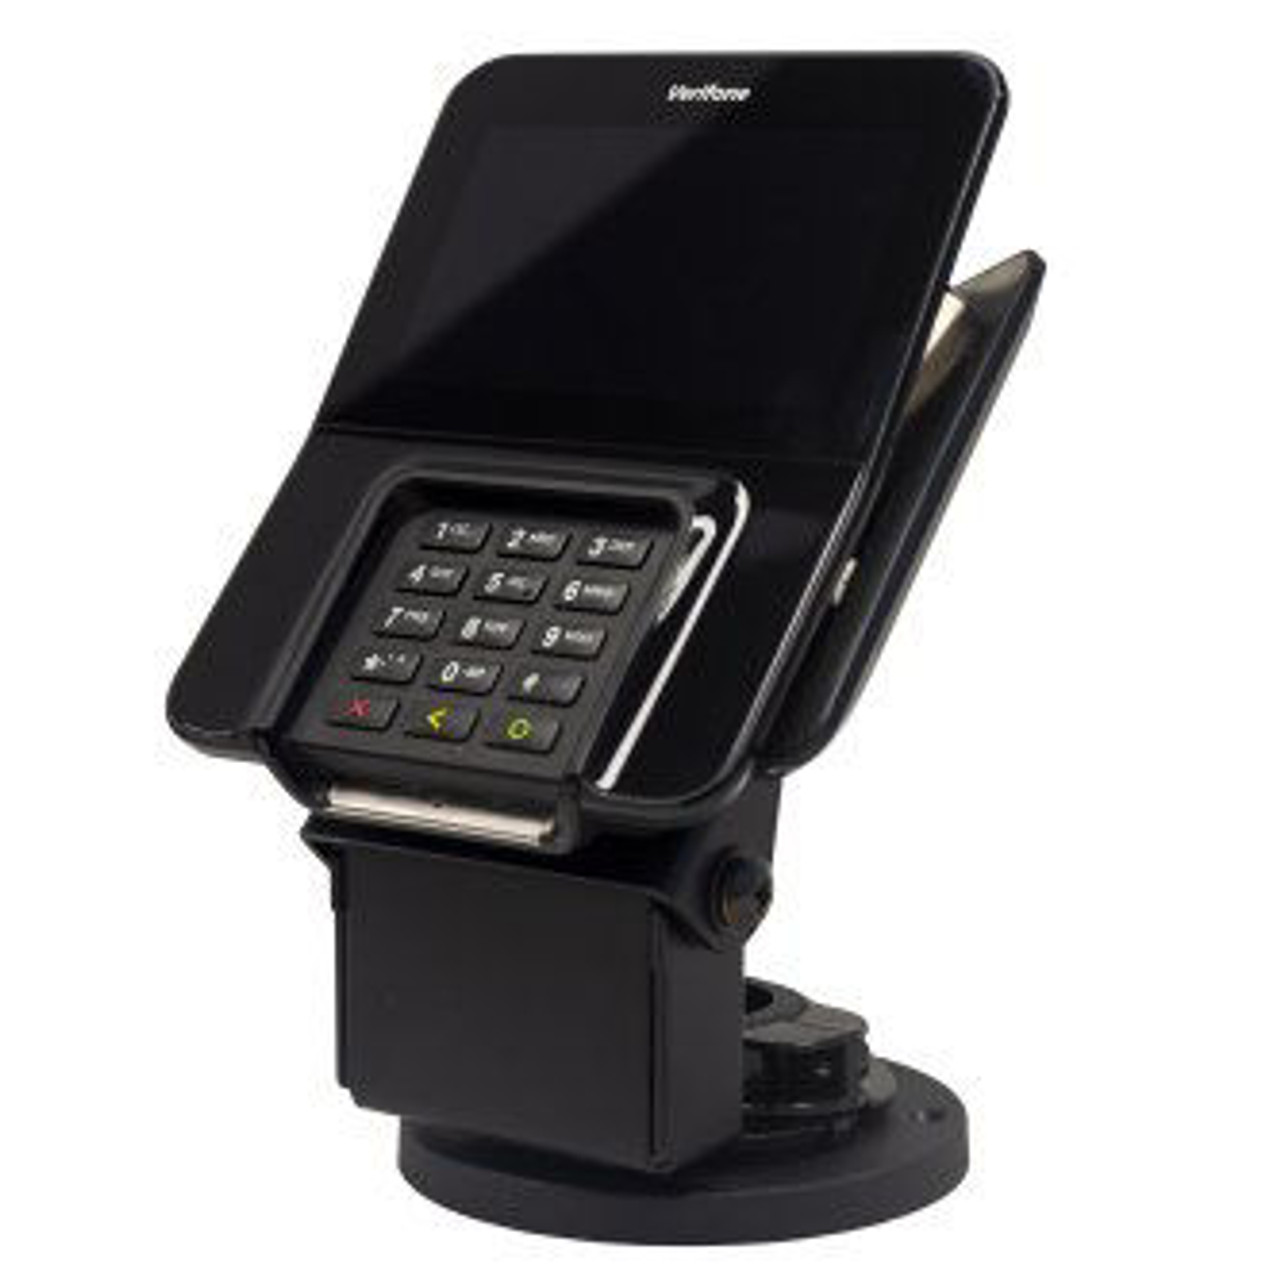 VeriFone M400 Credit Card Stand Low Contour by Swivel Stands